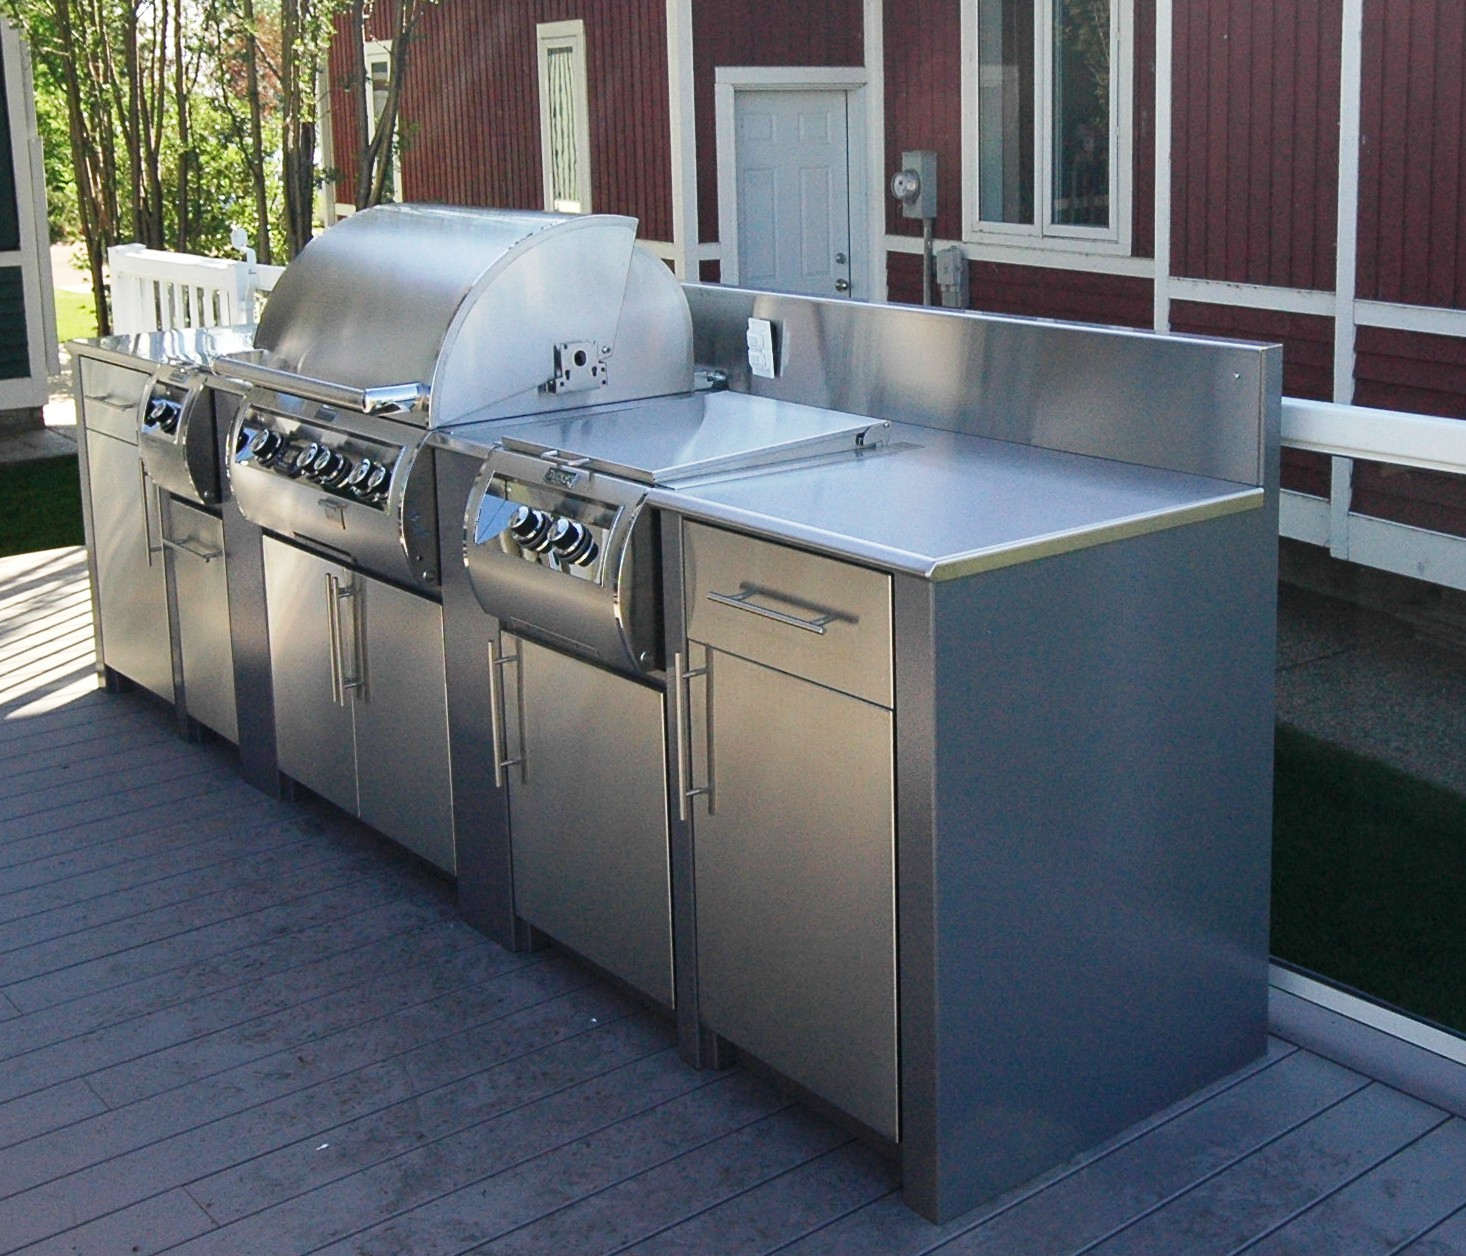 Stainless Steel Modular Kitchen Cabinets: Modular Stainless Steel Outdoor Kitchen Cabinets • Kitchen